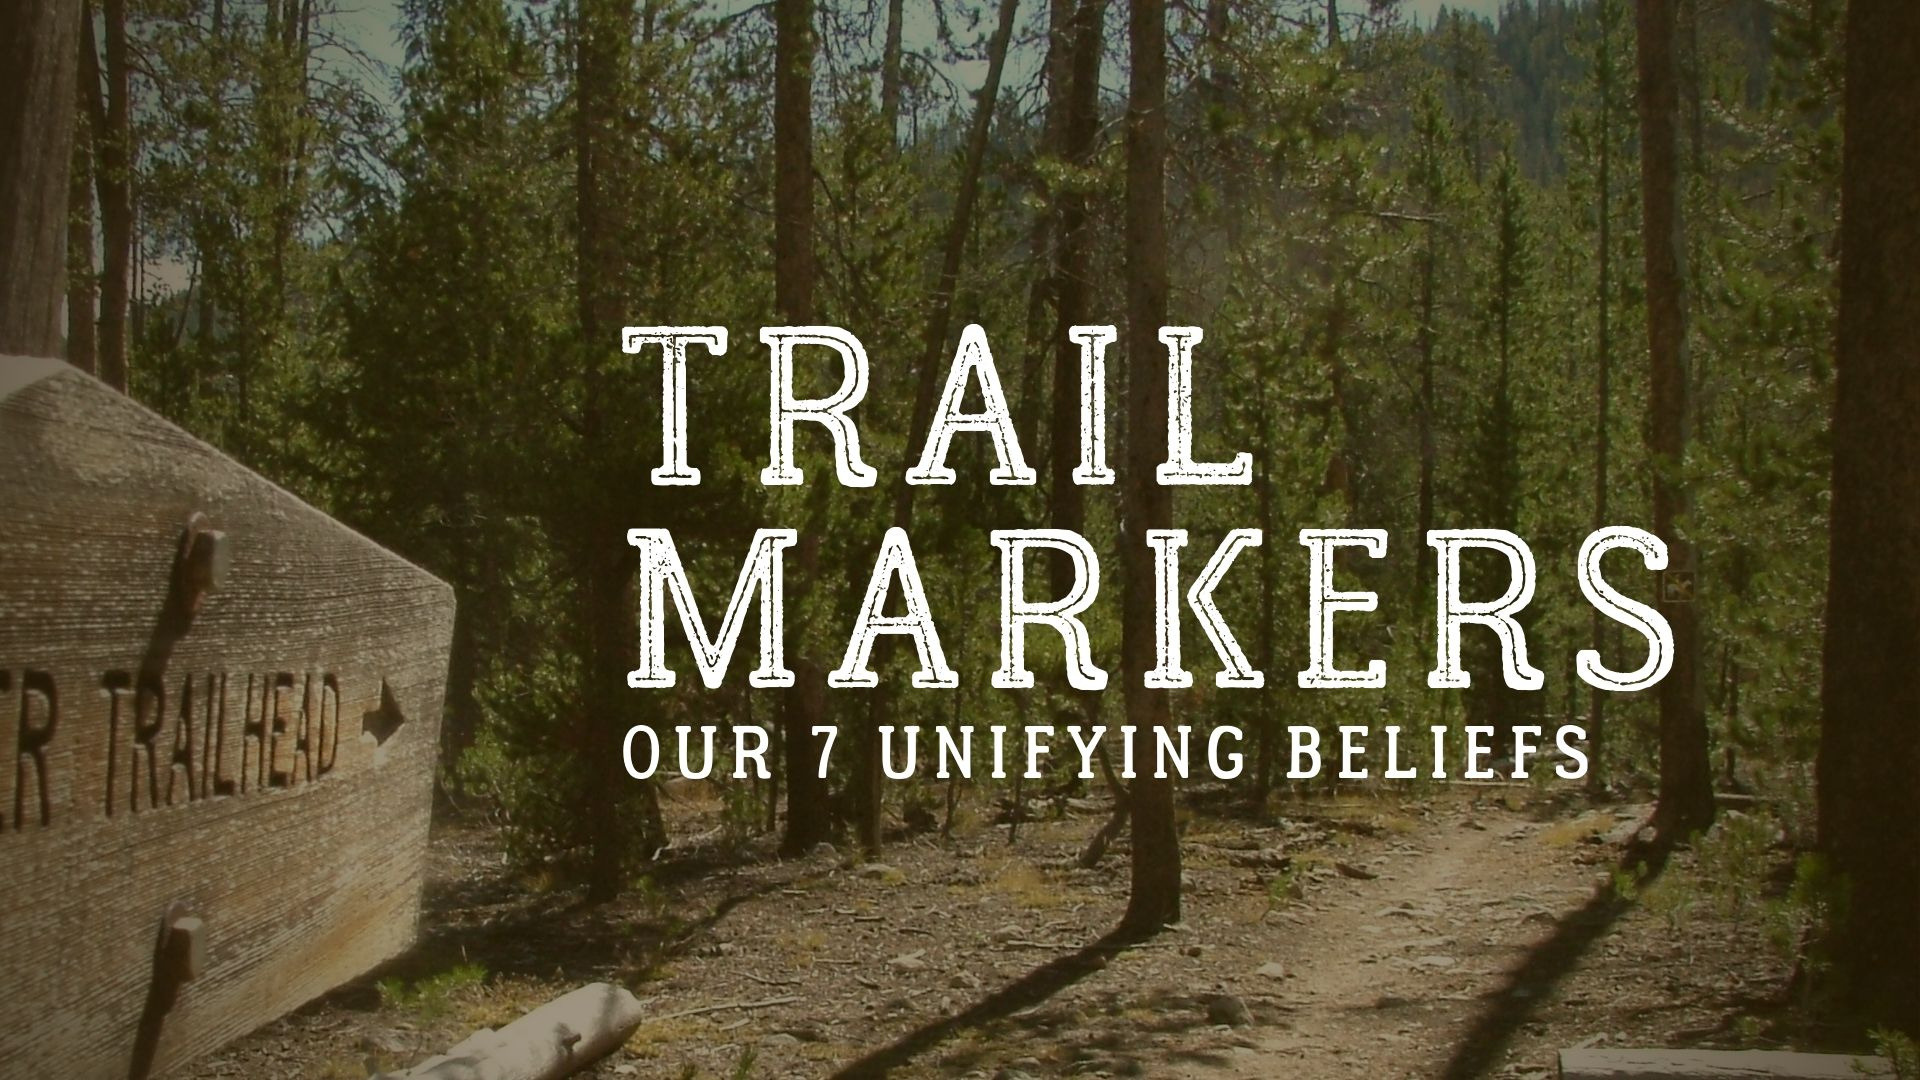 SERMON – Trail Marker 5: Our Response to Jesus